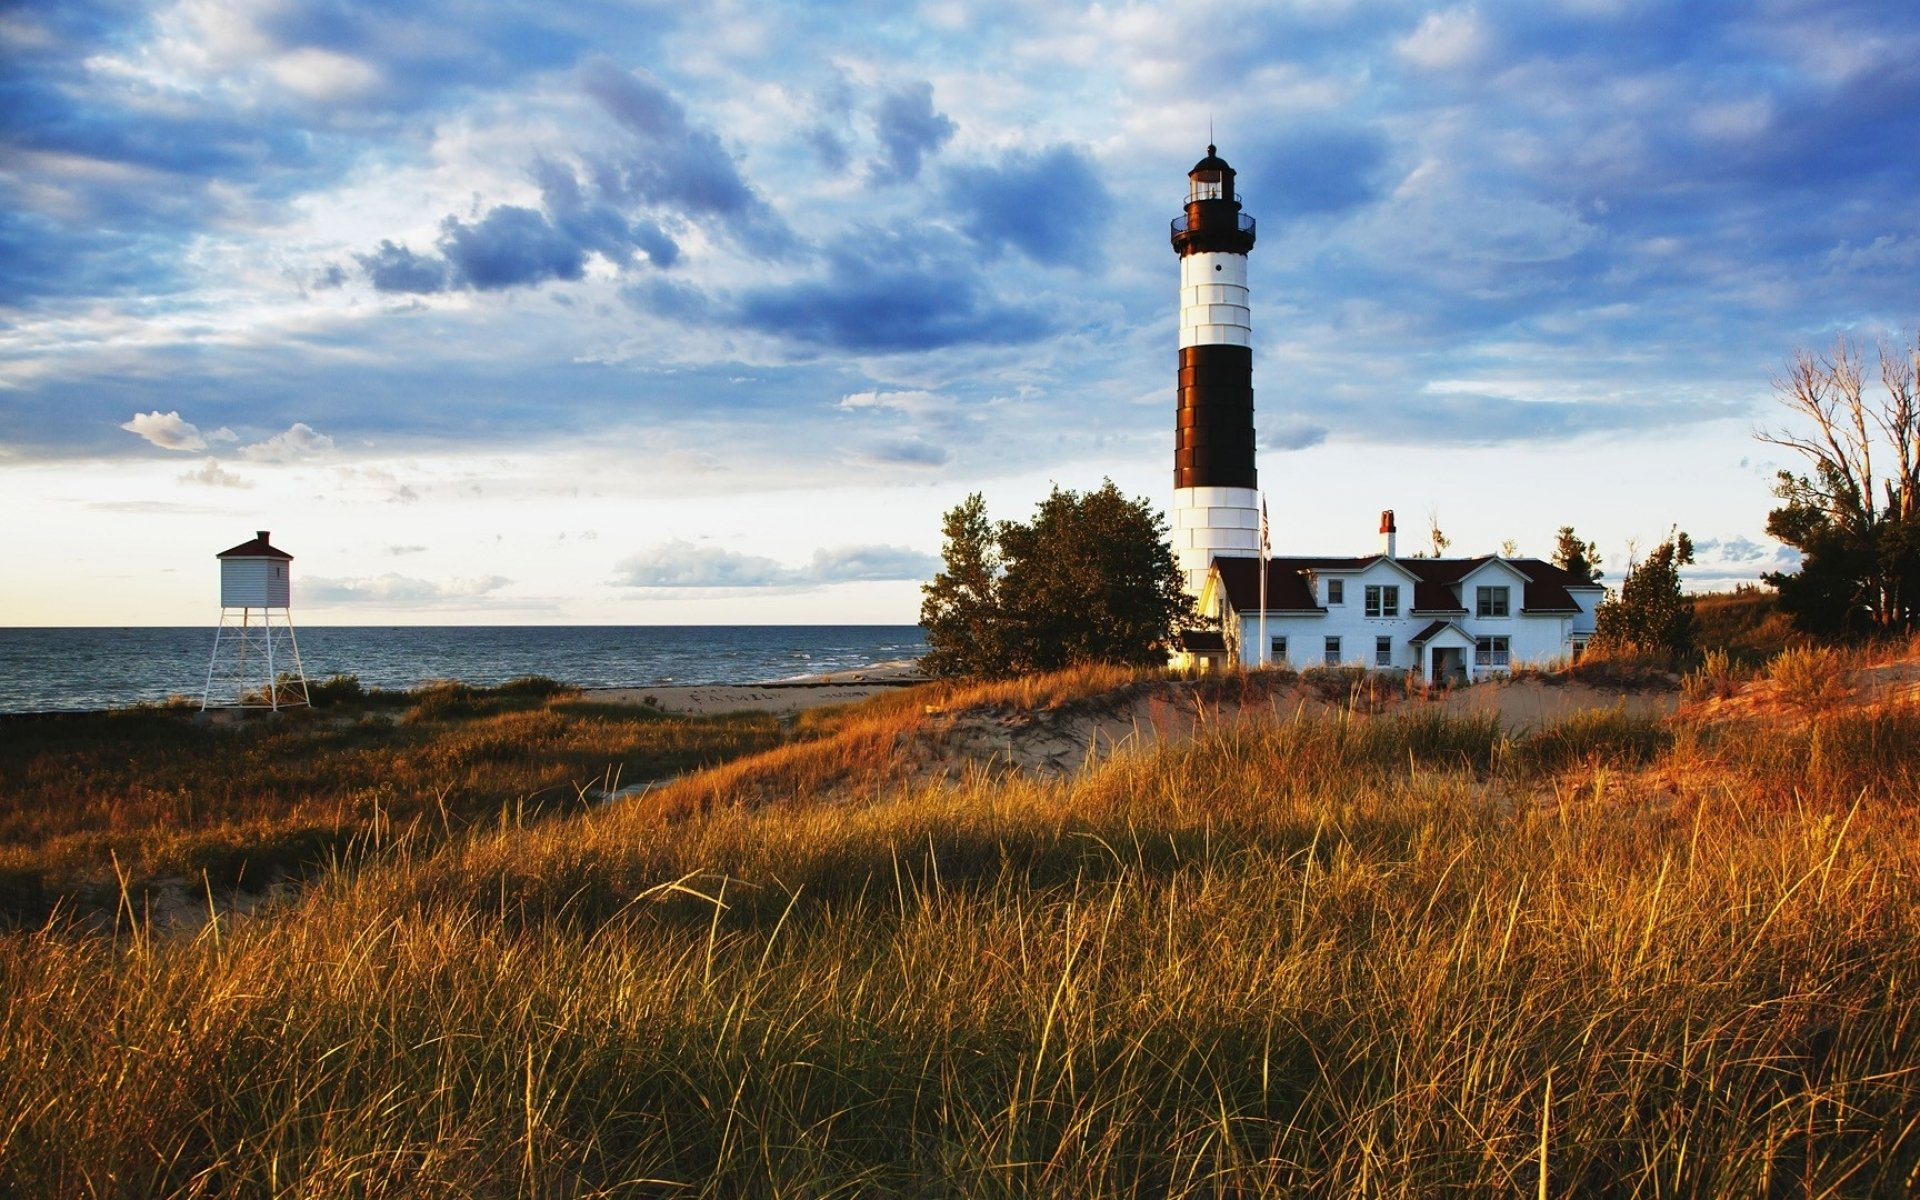 Hd Wallpapers For Laptop 15 6 Inch Screen Lighthouse Hd Wallpaper Background Image 1920x1200